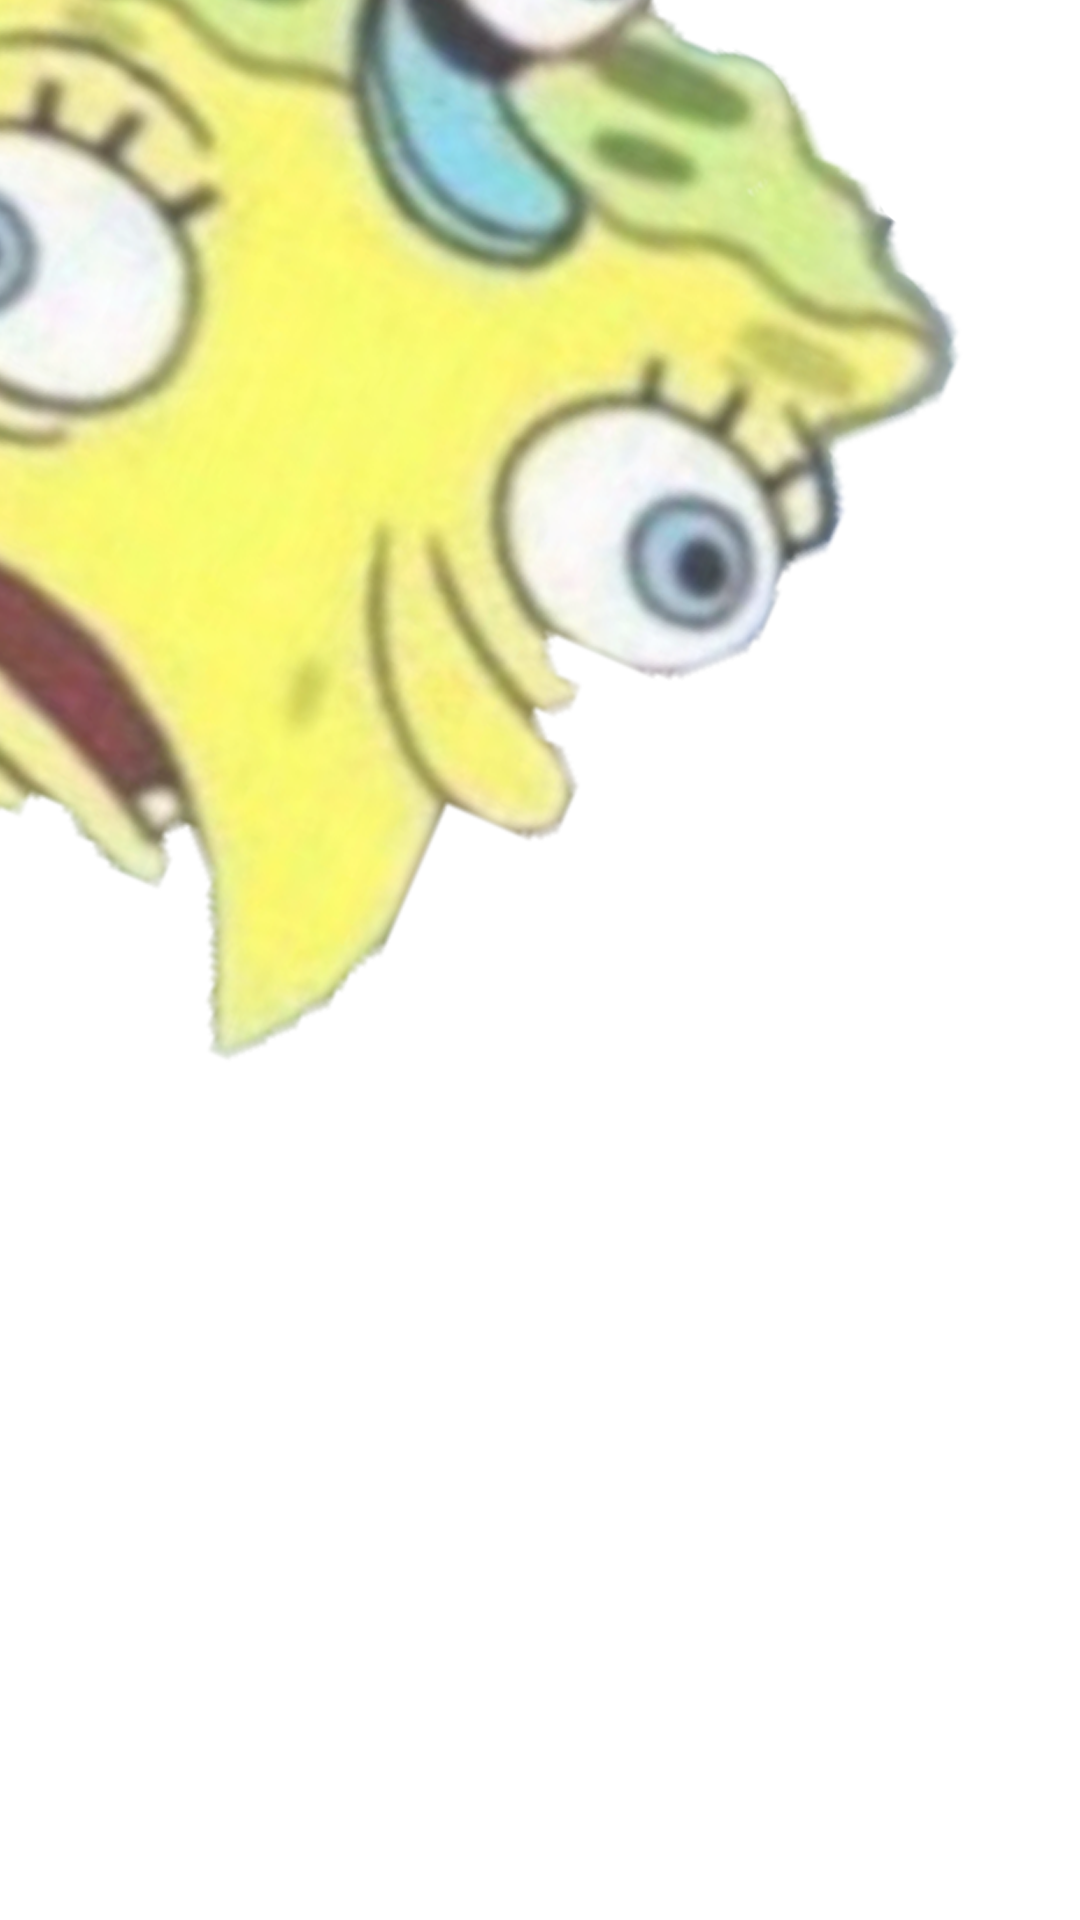 Mocking spongebob png. Filter snapprefs filterfilter